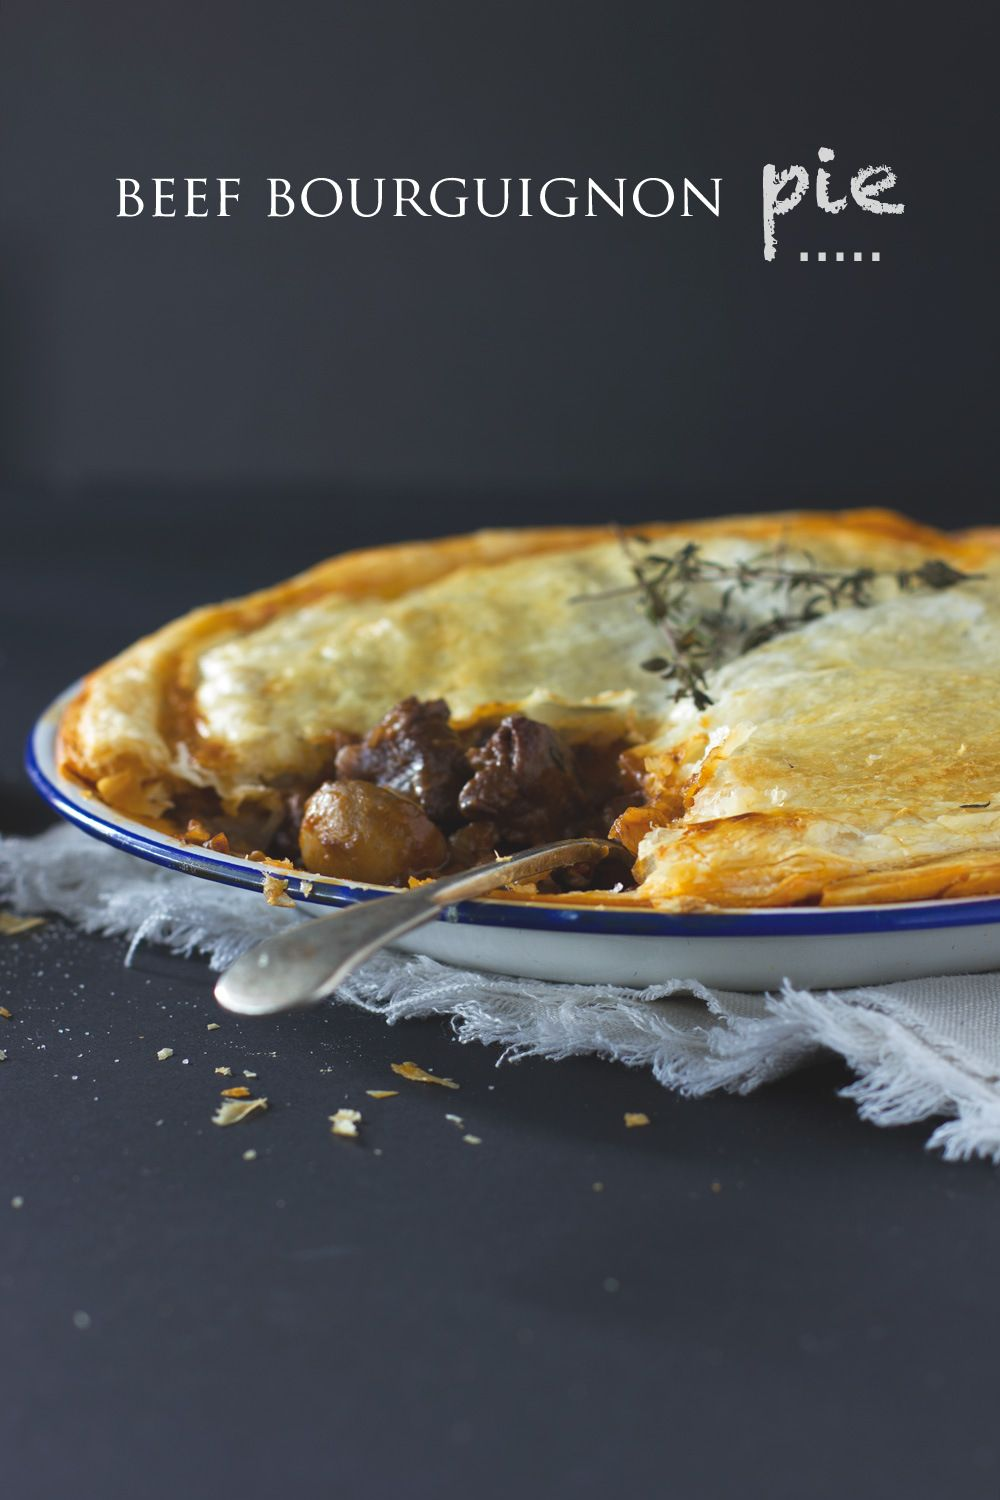 A winter delight: homemade beef bourguignon pie » cake crumbs & beach sand